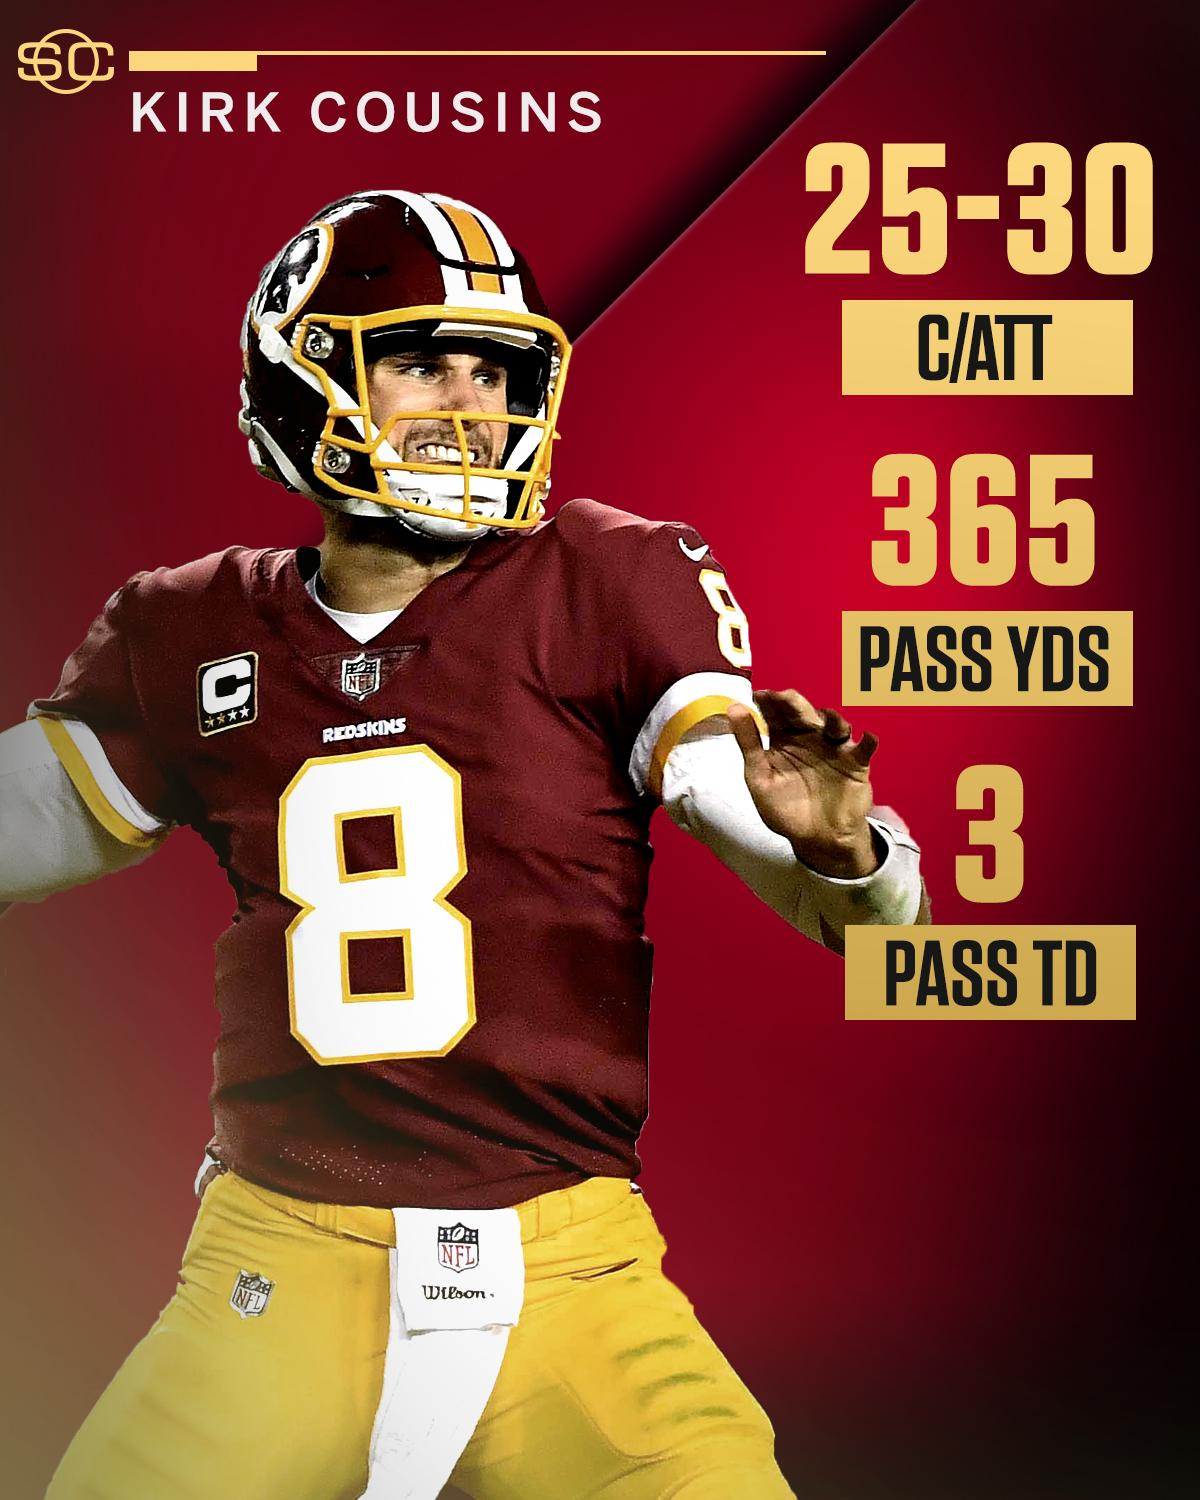 Kirk didn't miss many targets Sunday night. https://t.co/4DkUIcsquw